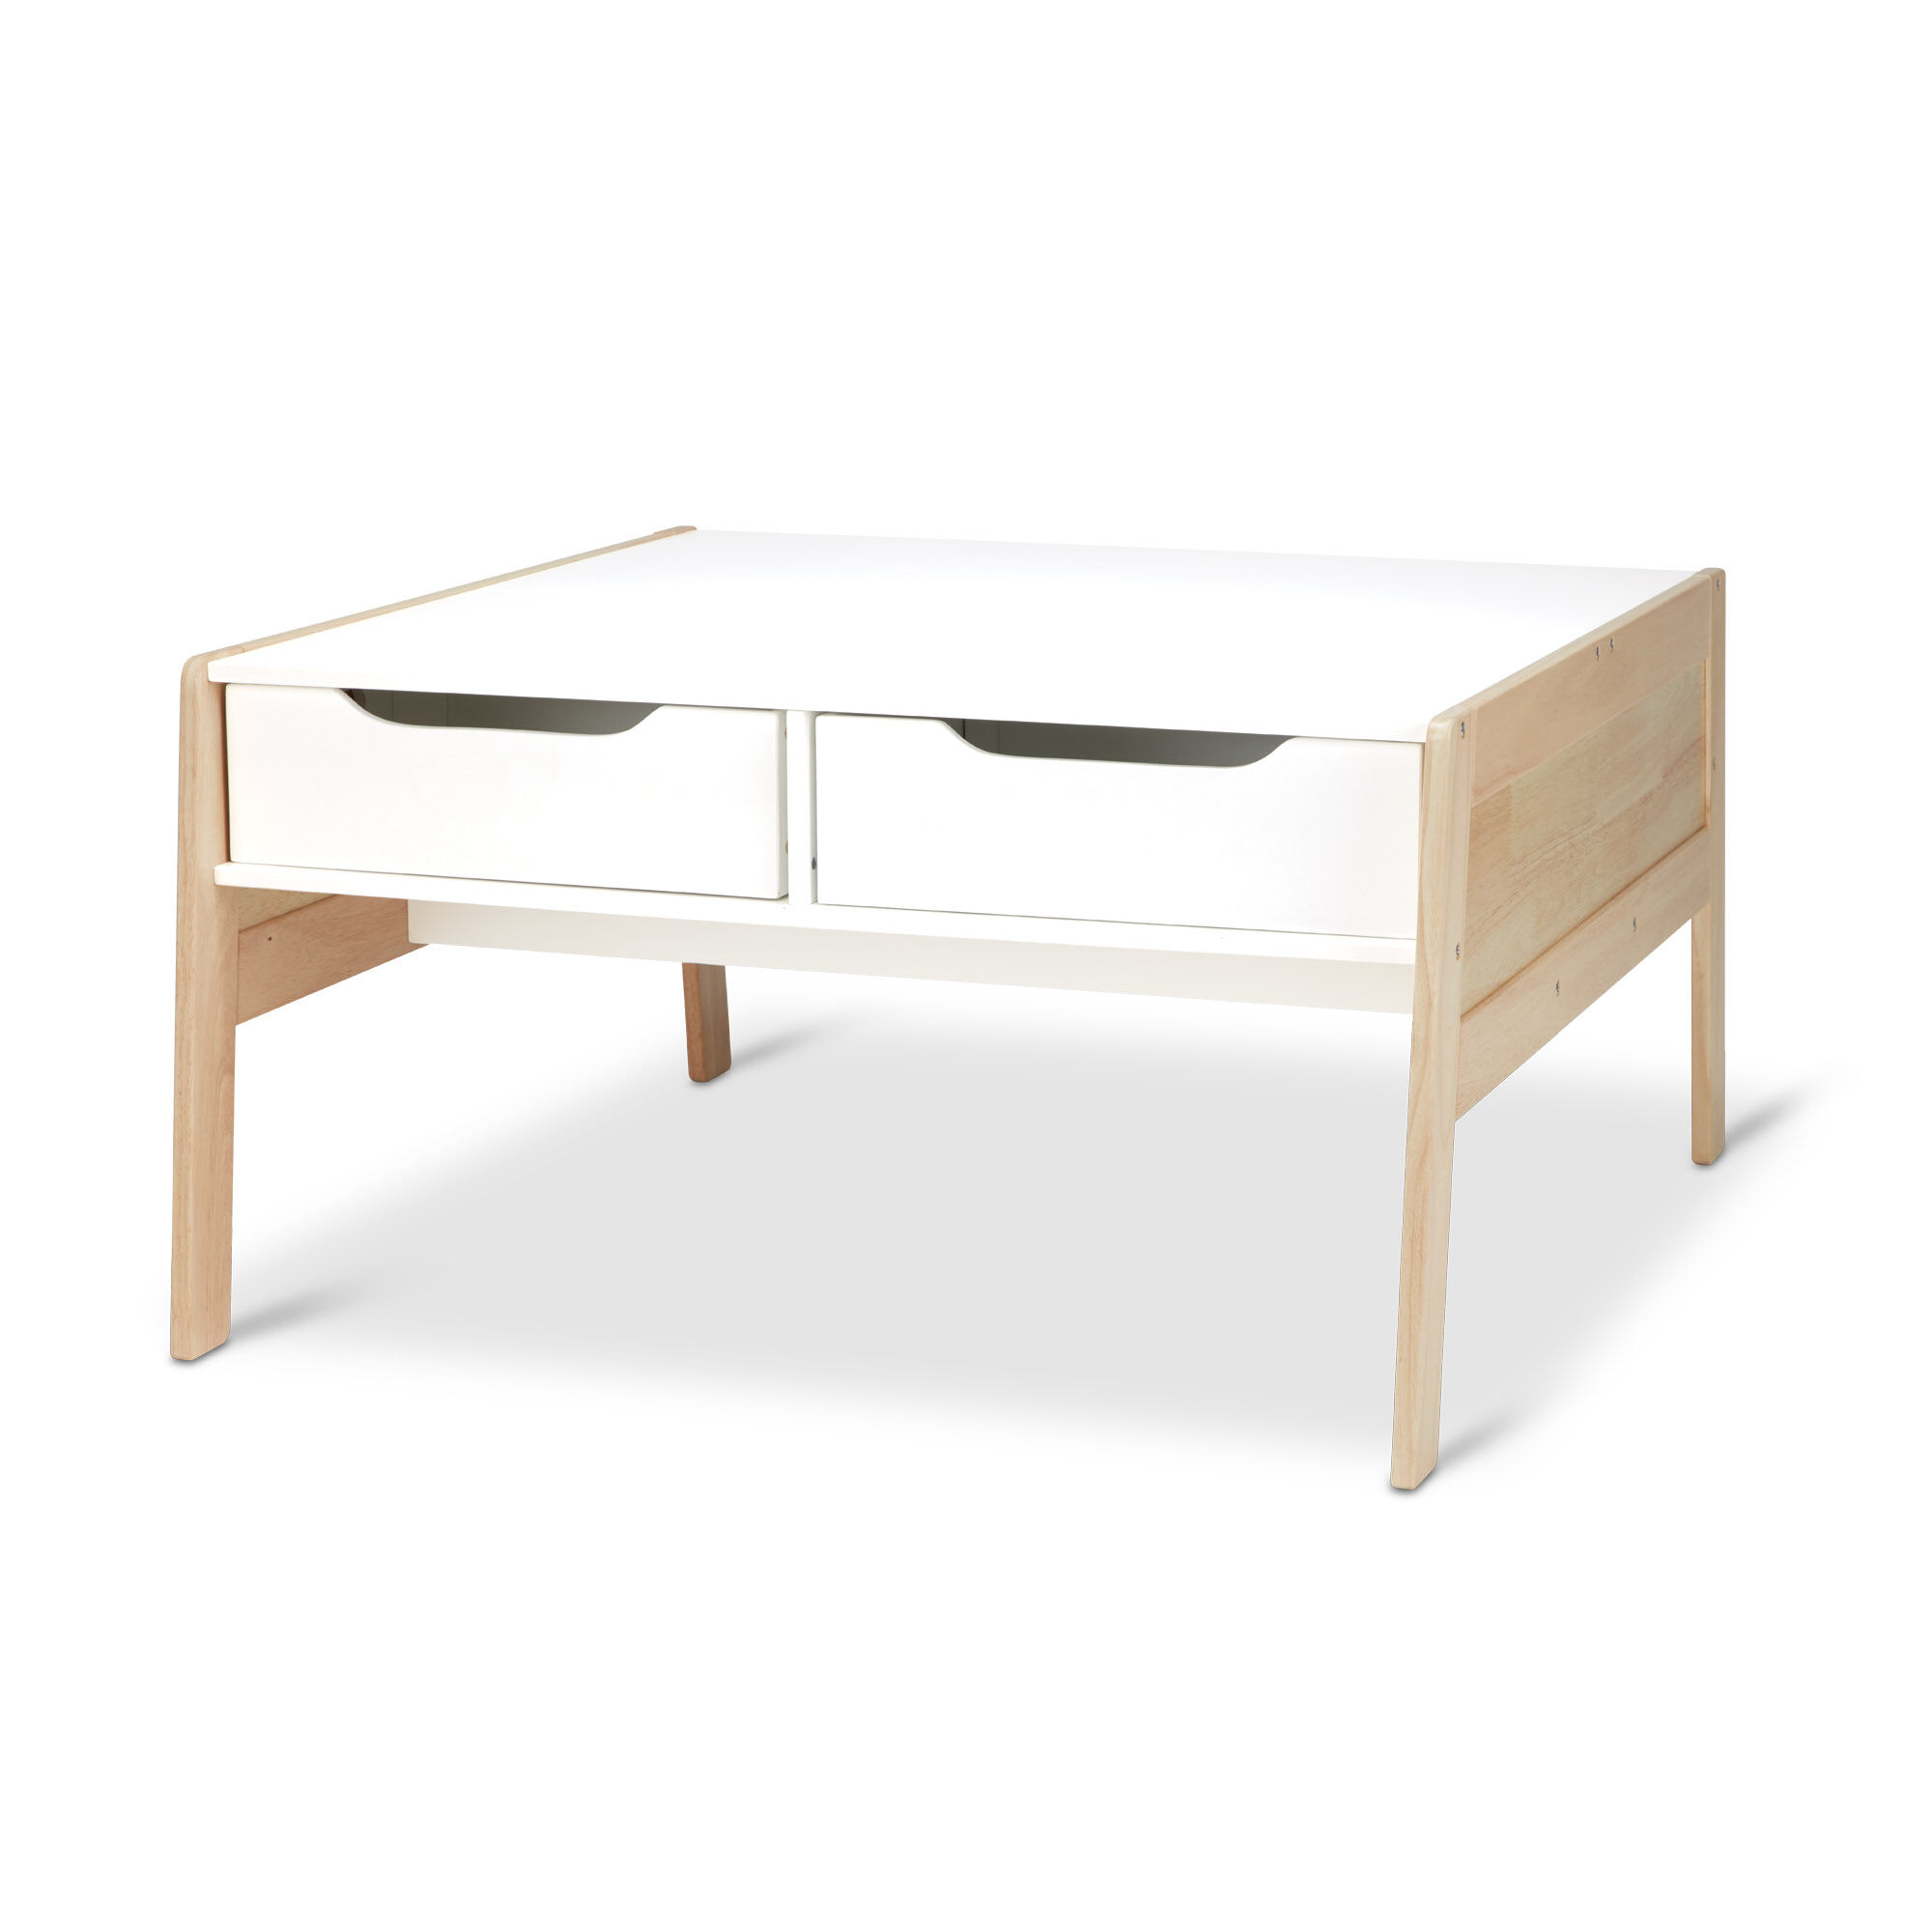 wooden art activity table with bins